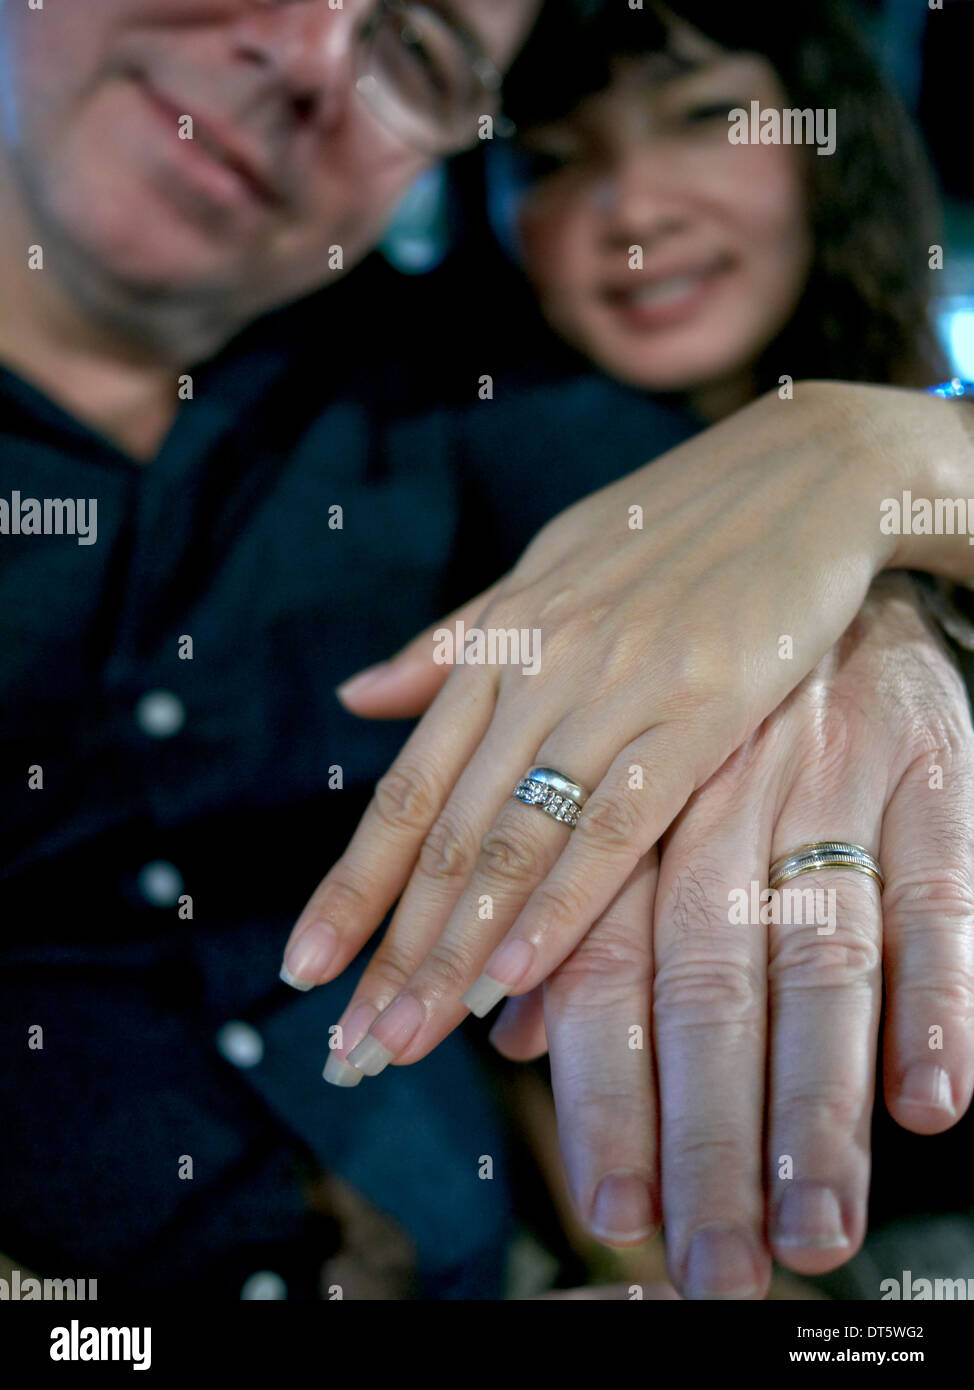 Newly wed young couple proudly displaying wedding rings. - Stock Image